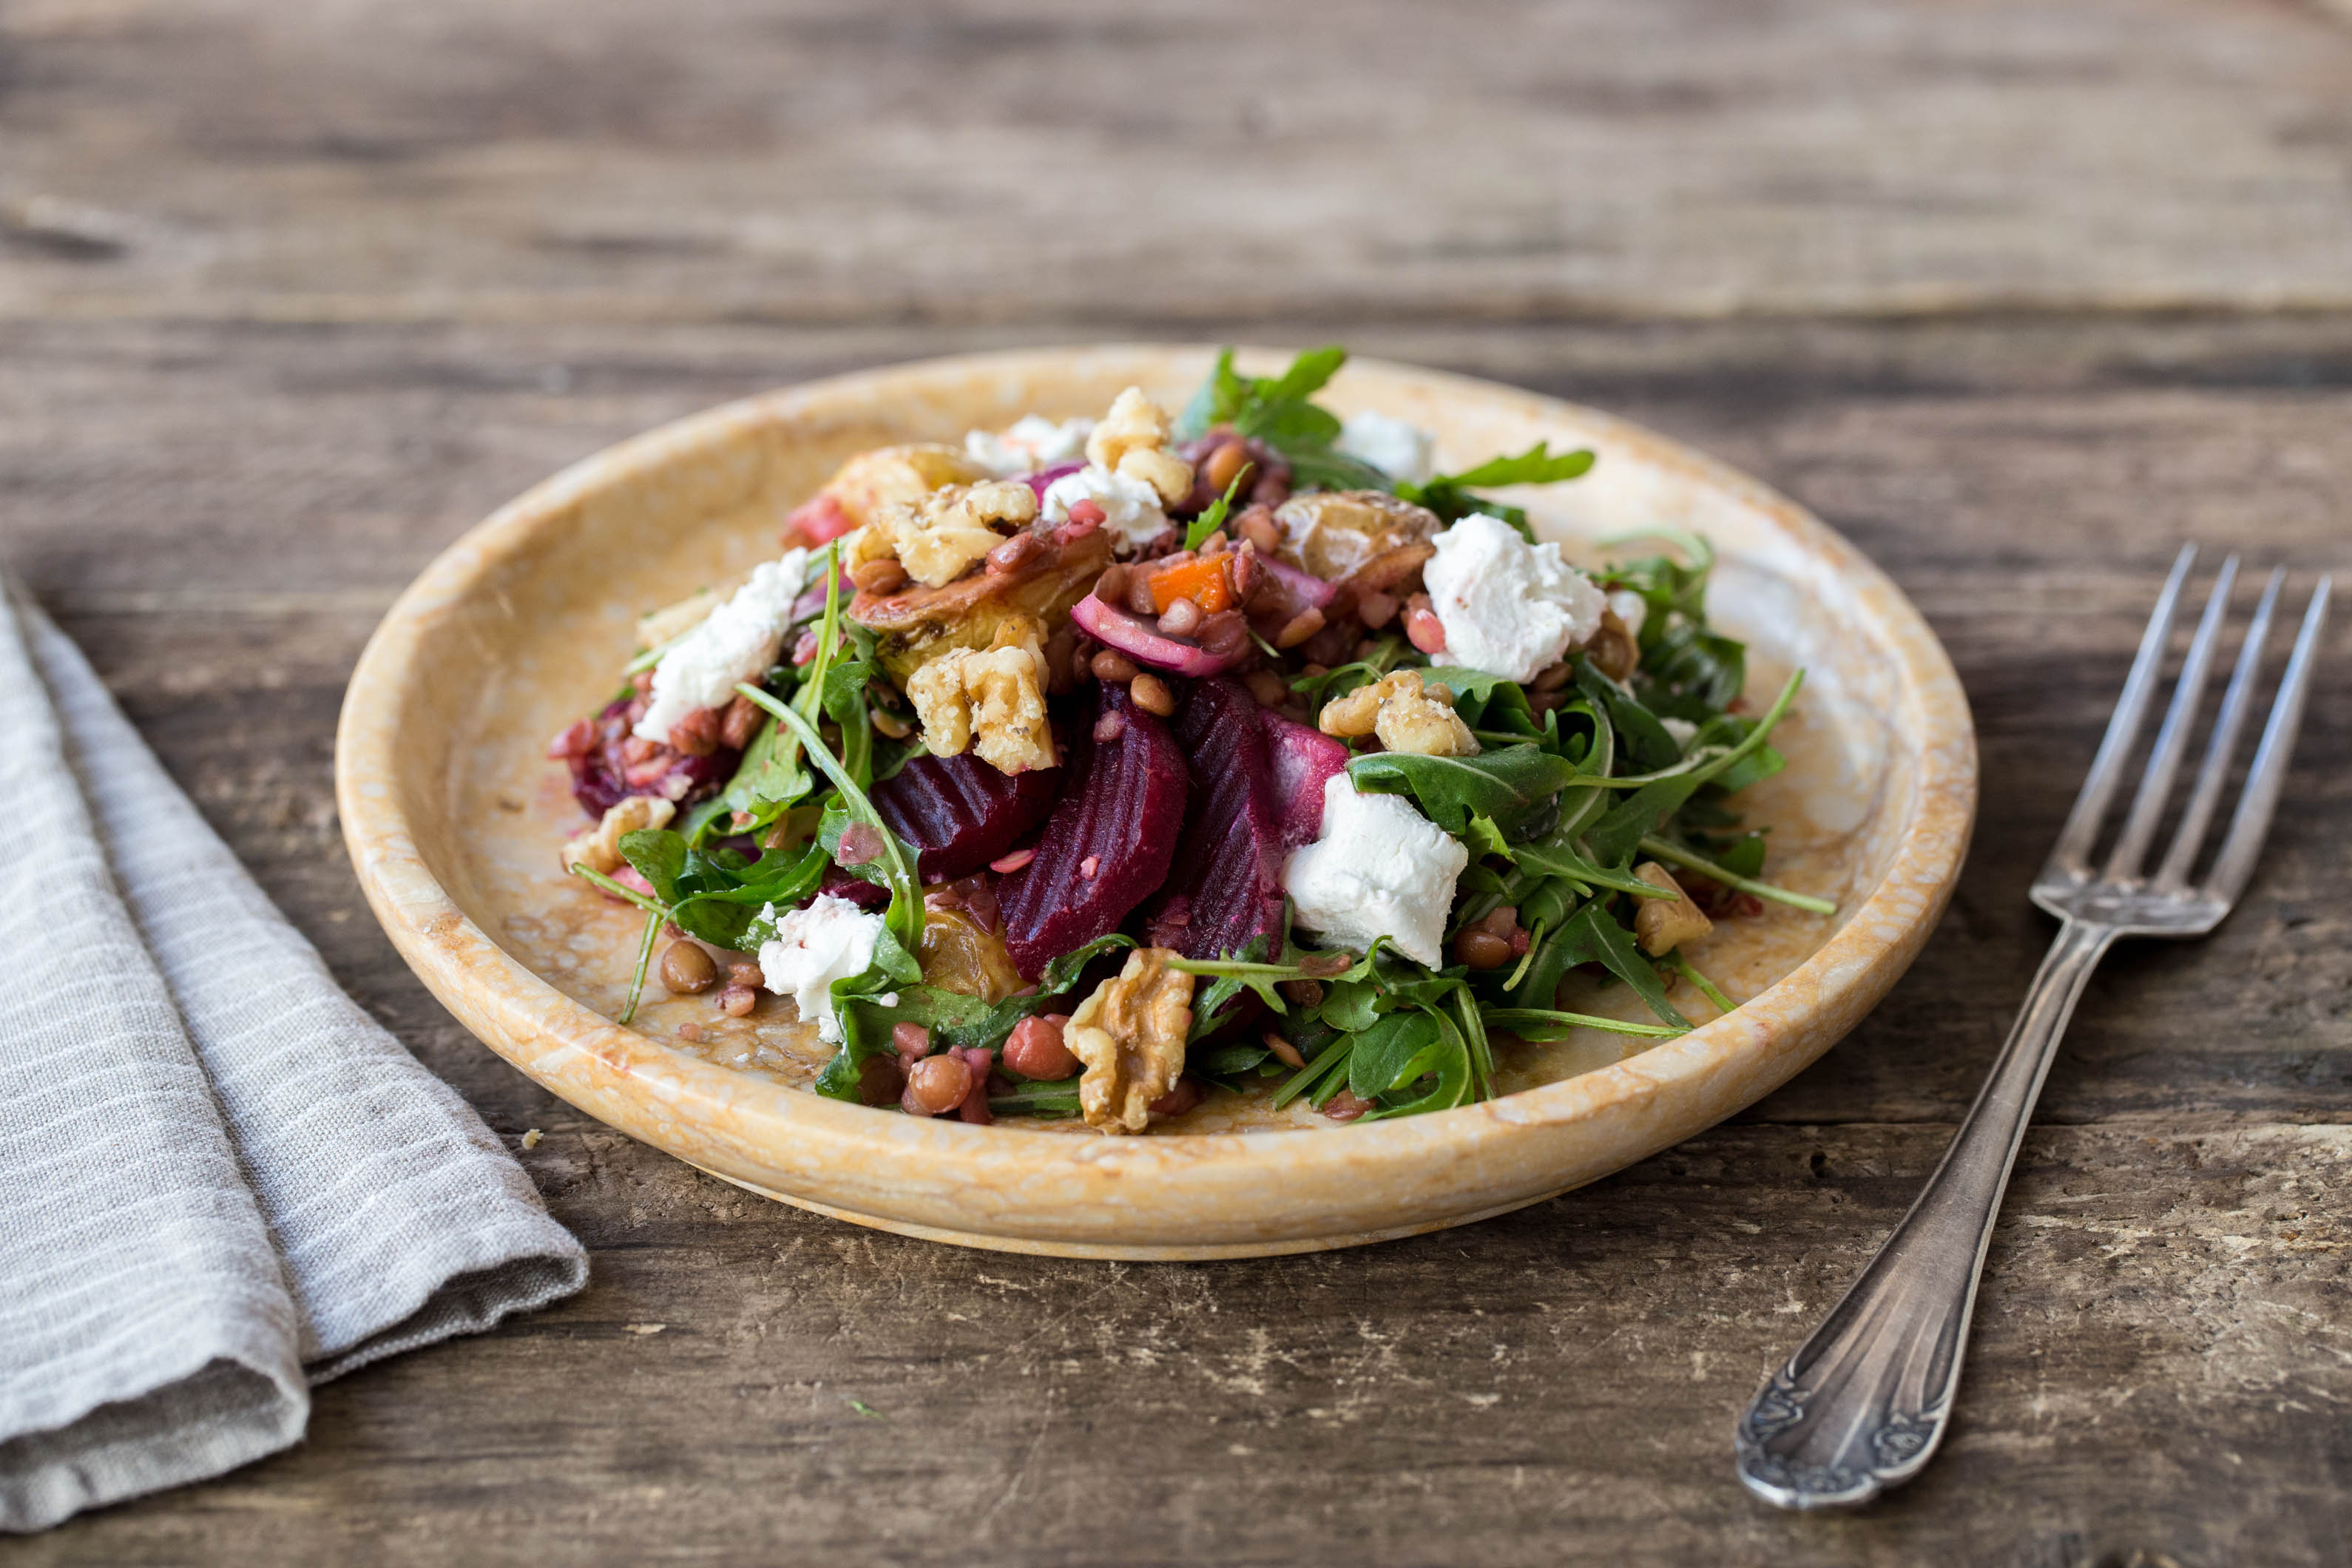 Roasted Beet & Lentil Salad with Goat Cheese Recipe | HelloFresh